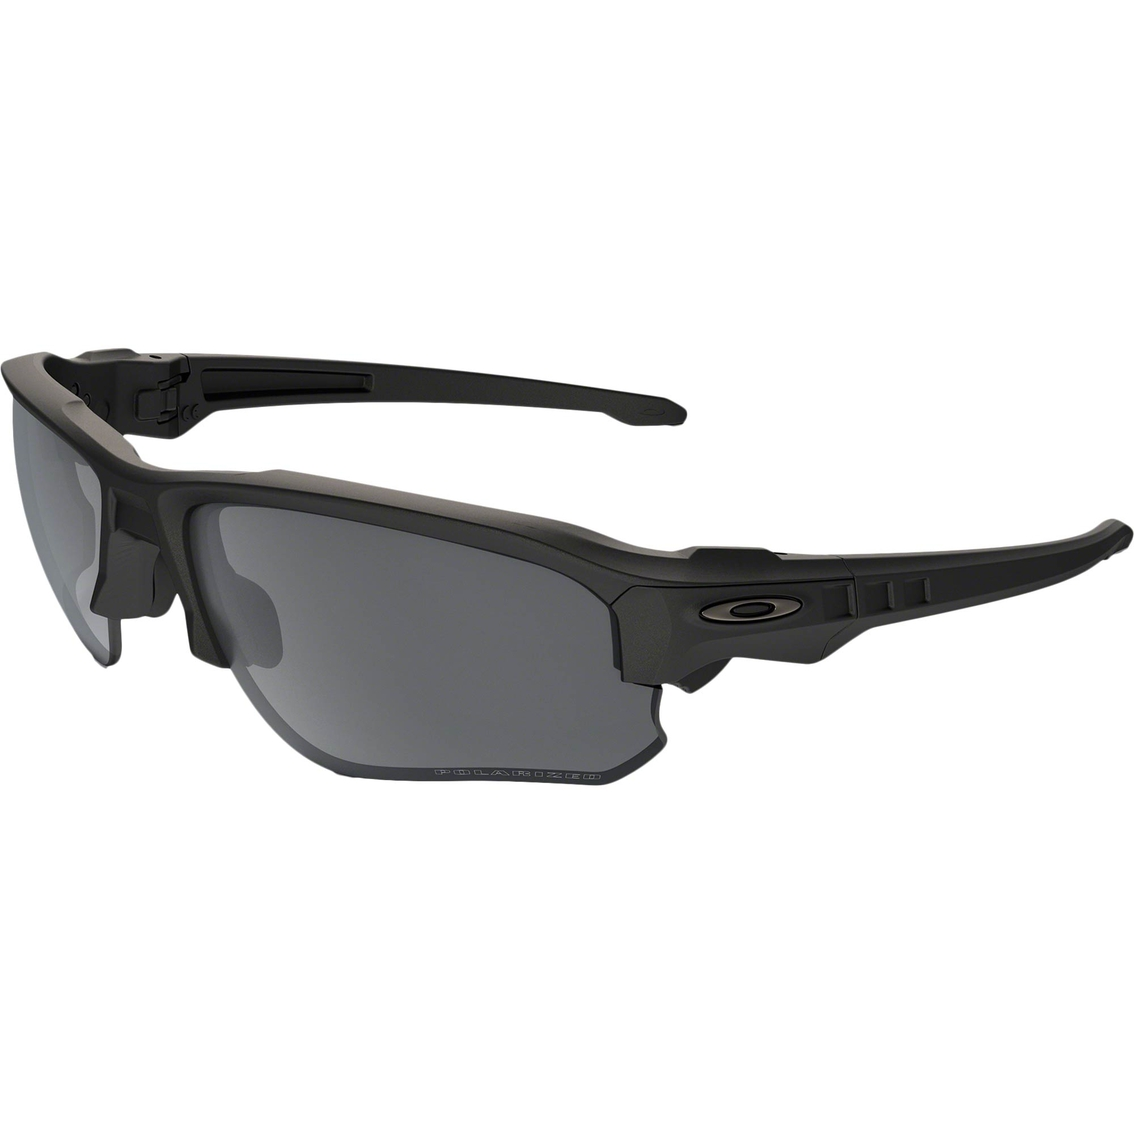 Oakley speed jacket polarized standard issue sunglasses oo9228 02 oakley speed jacket polarized standard issue sunglasses oo9228 02 nvjuhfo Images